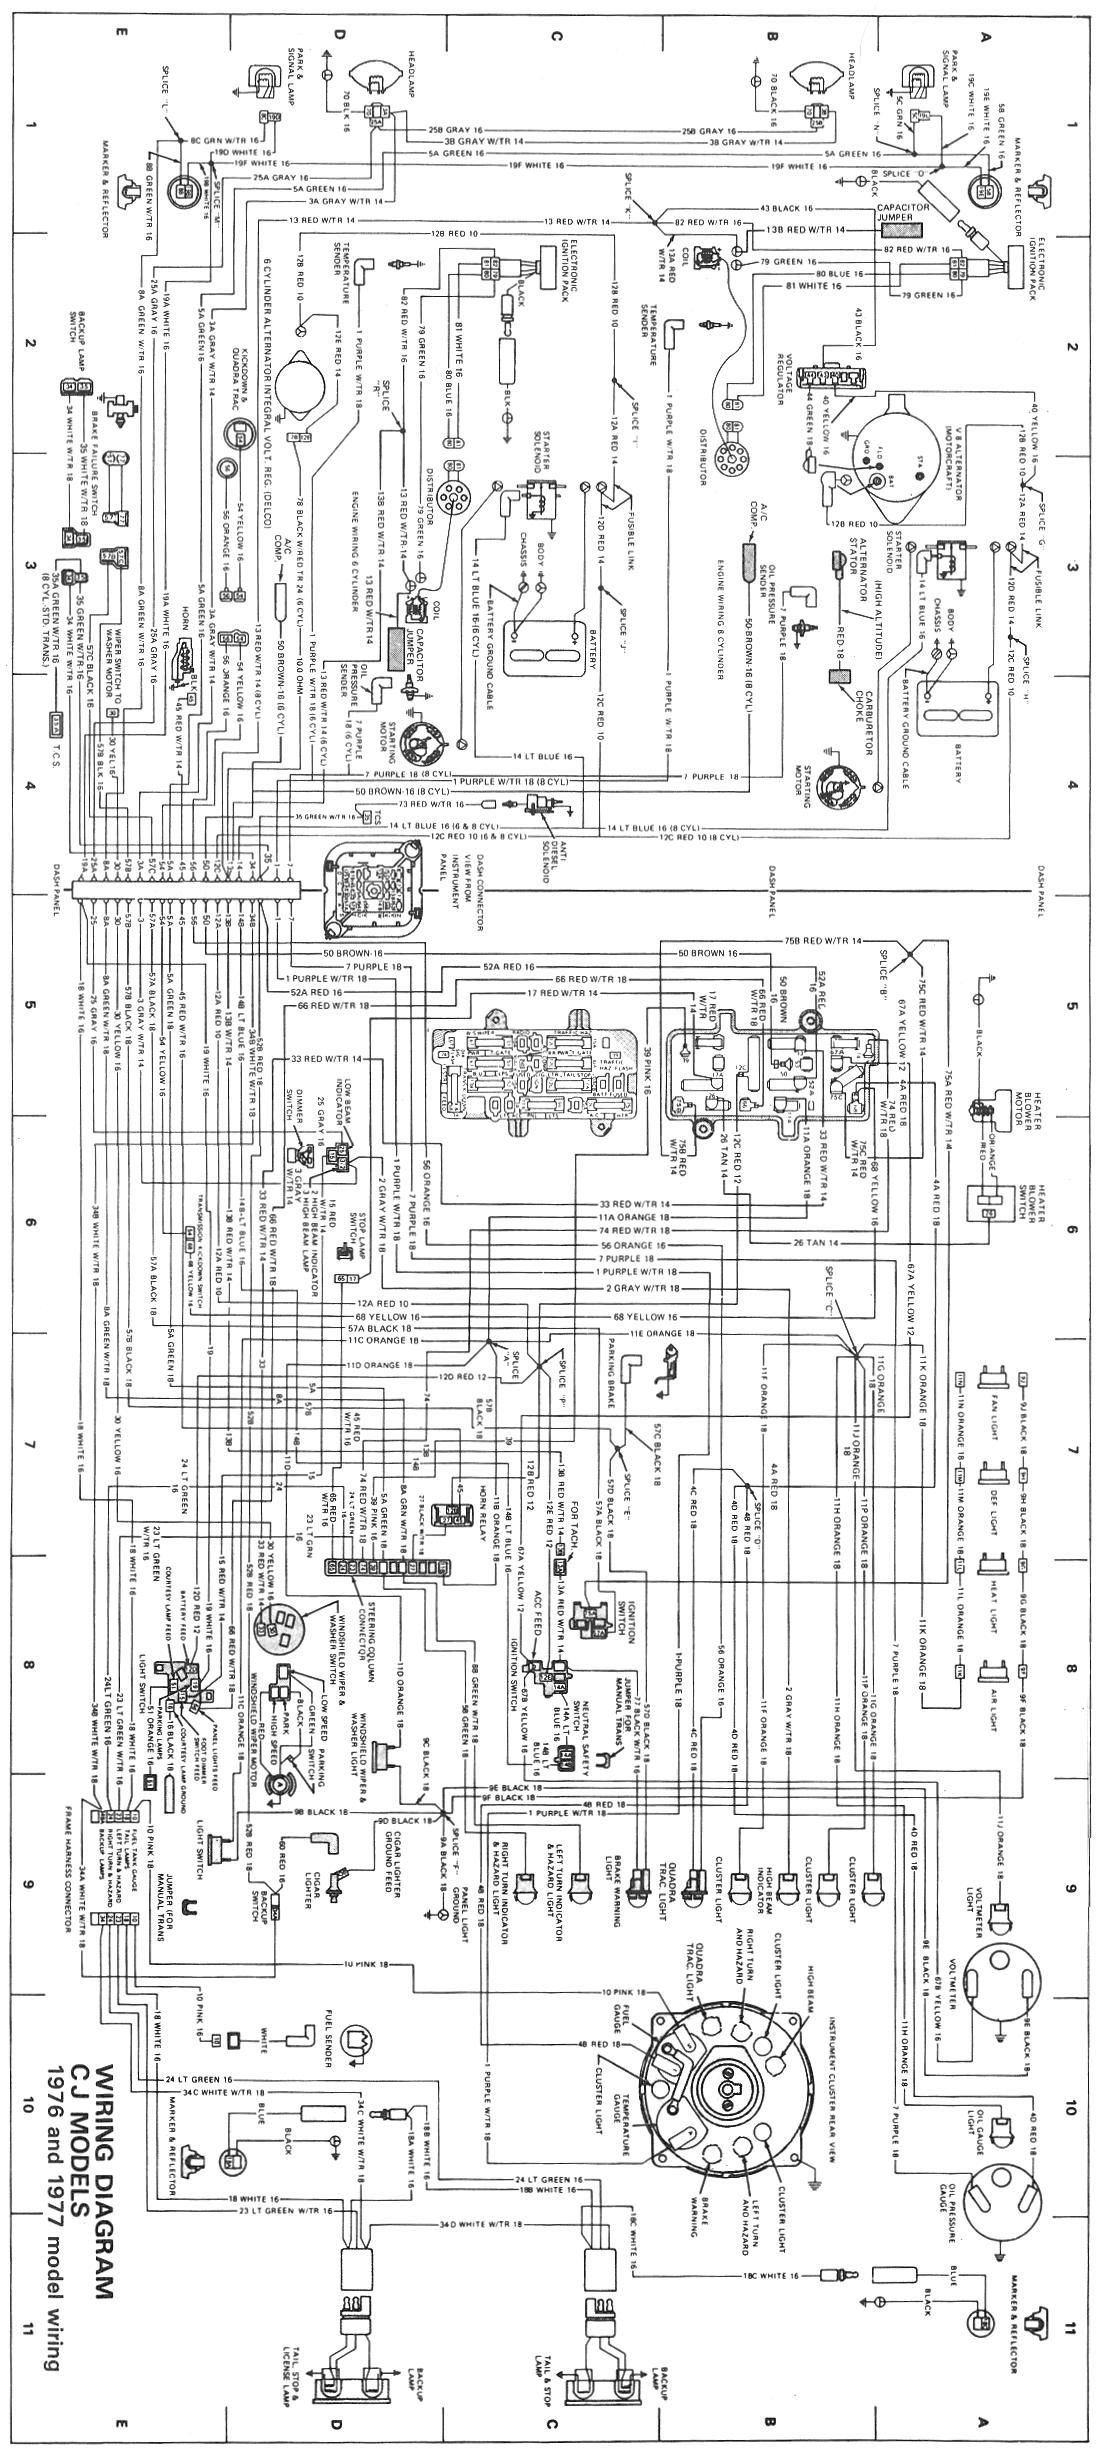 8d25ded6e3673519e155875e09844e5e cj wiring diagram 1976 1977 jpg 1,100�2,459 pixels 1976 jeep cj5 CJ7 Wiring Harness Diagram at edmiracle.co